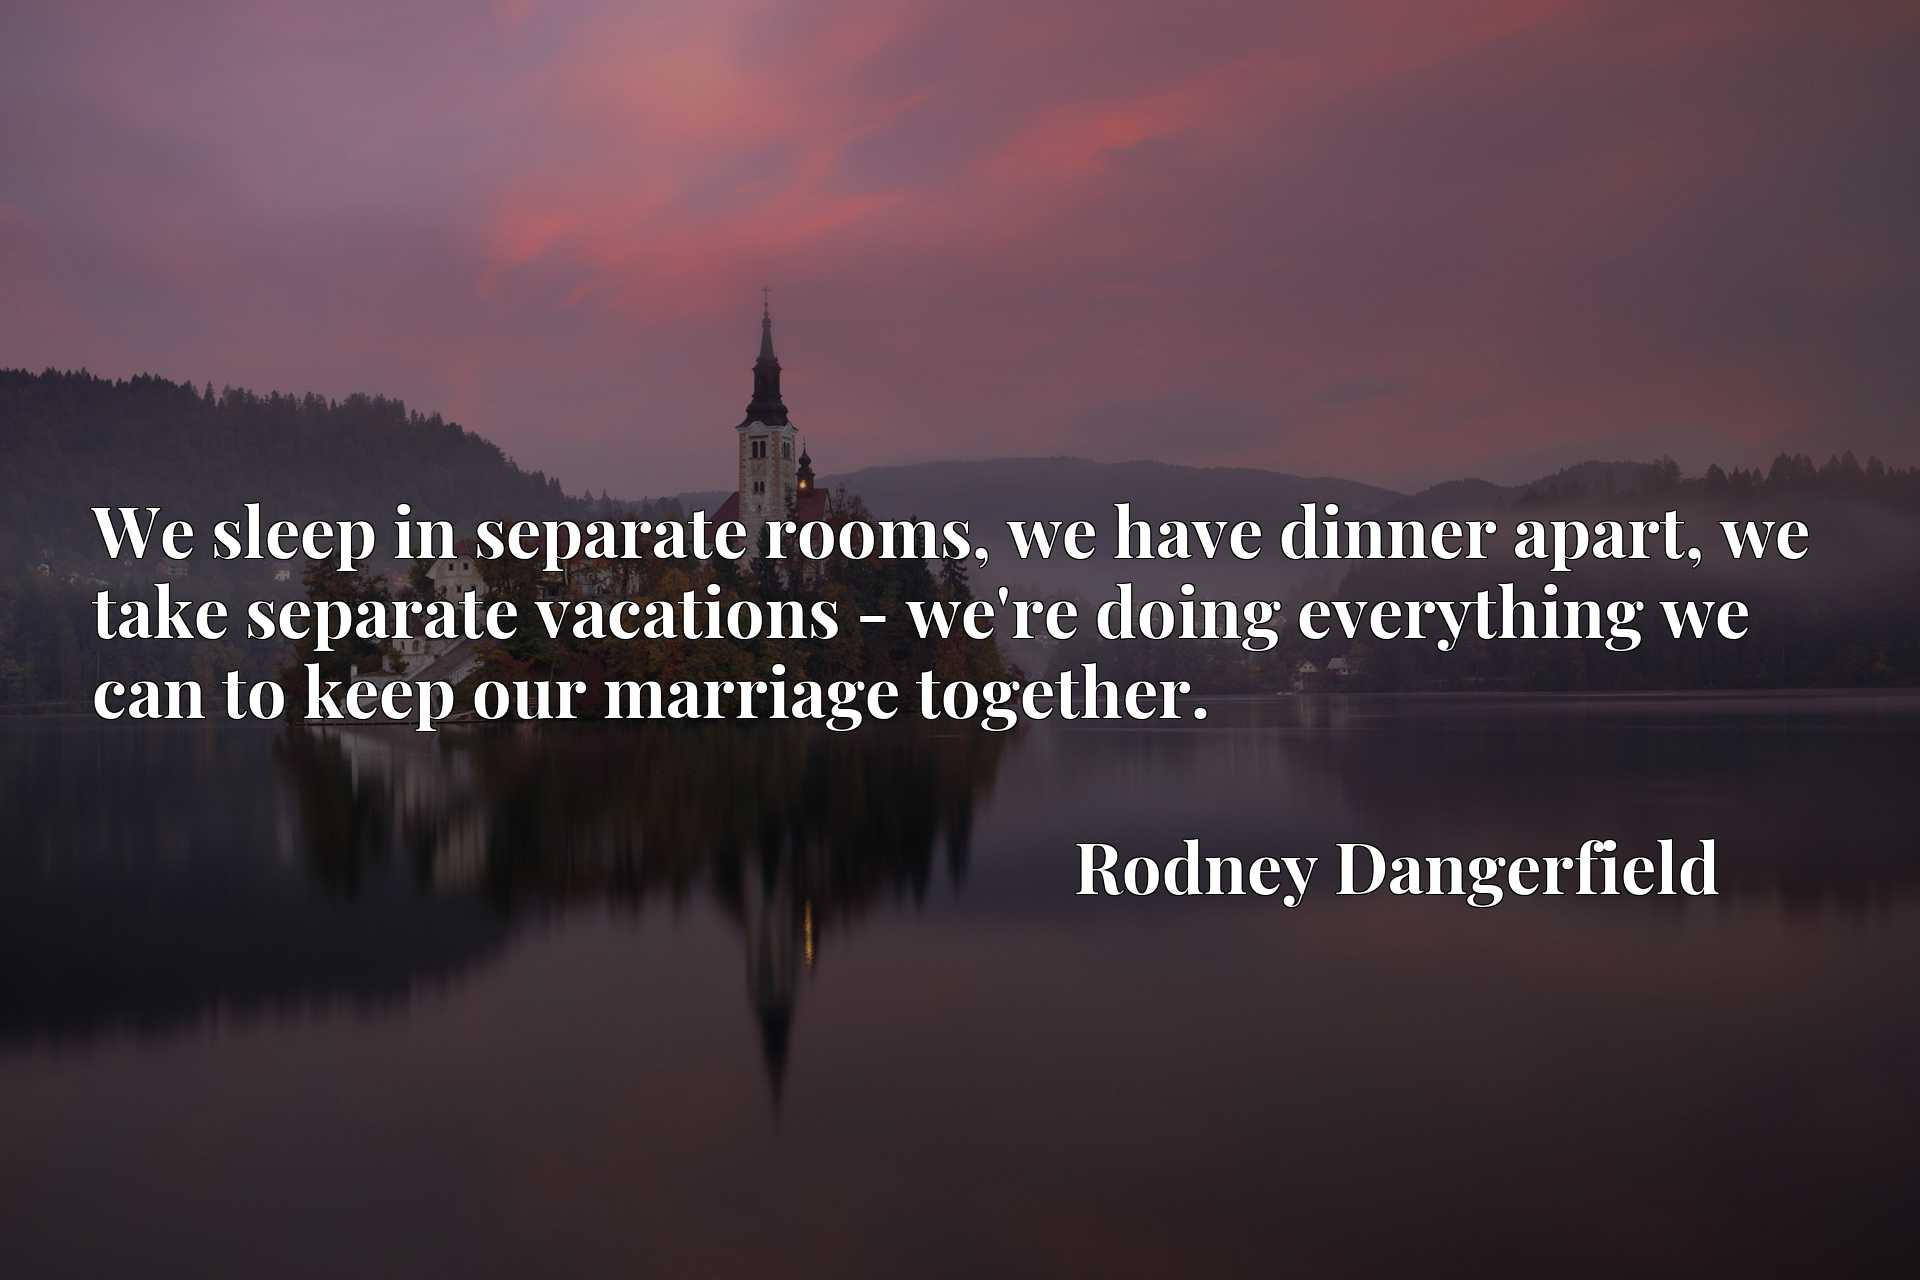 Quote Picture :We sleep in separate rooms, we have dinner apart, we take separate vacations - we're doing everything we can to keep our marriage together.